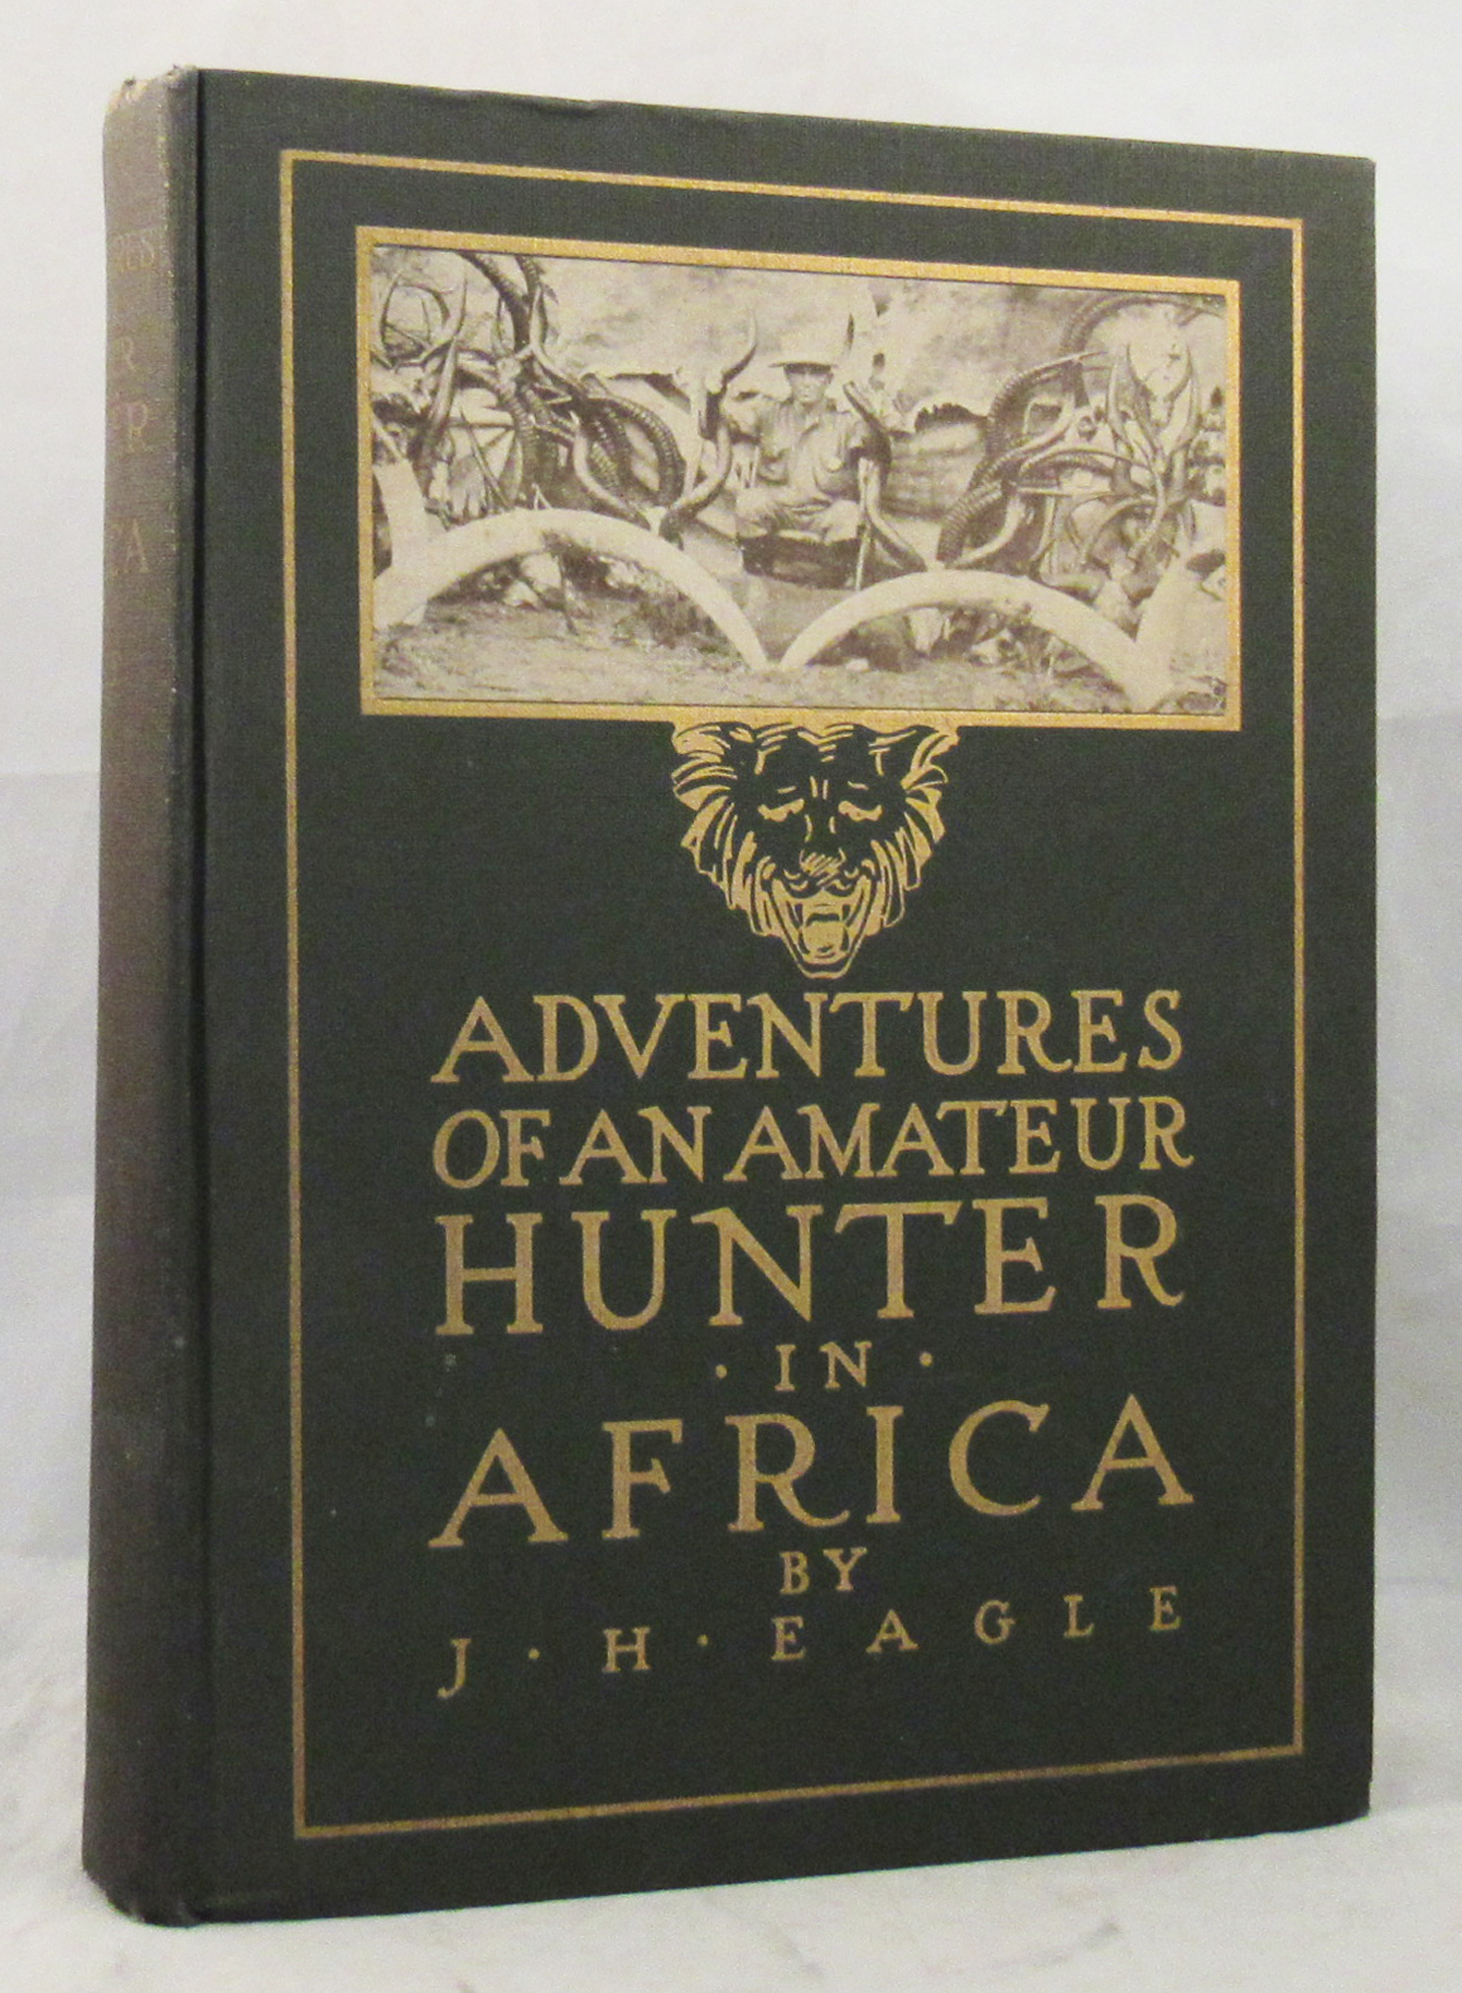 ADVENTURES OF AN AMATEUR HUNTER IN AFRICA. John H. Eagle.